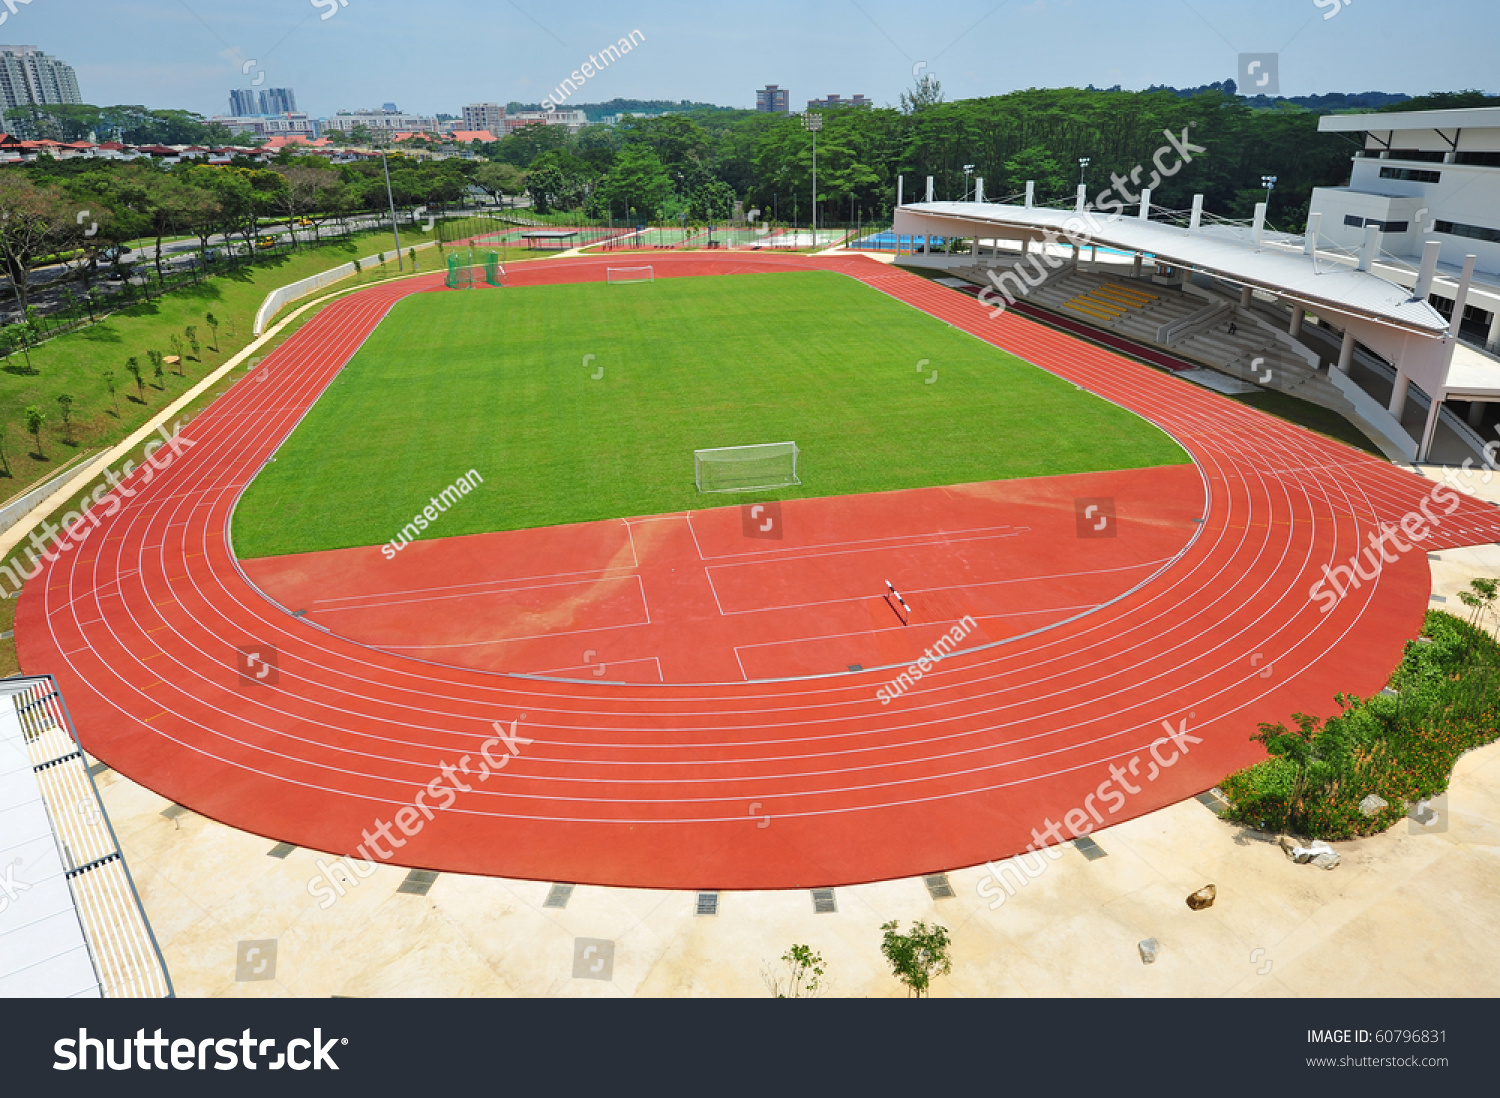 How to Apply Calculus in Sports to Improve Performance  |Running Track Birds Eye View